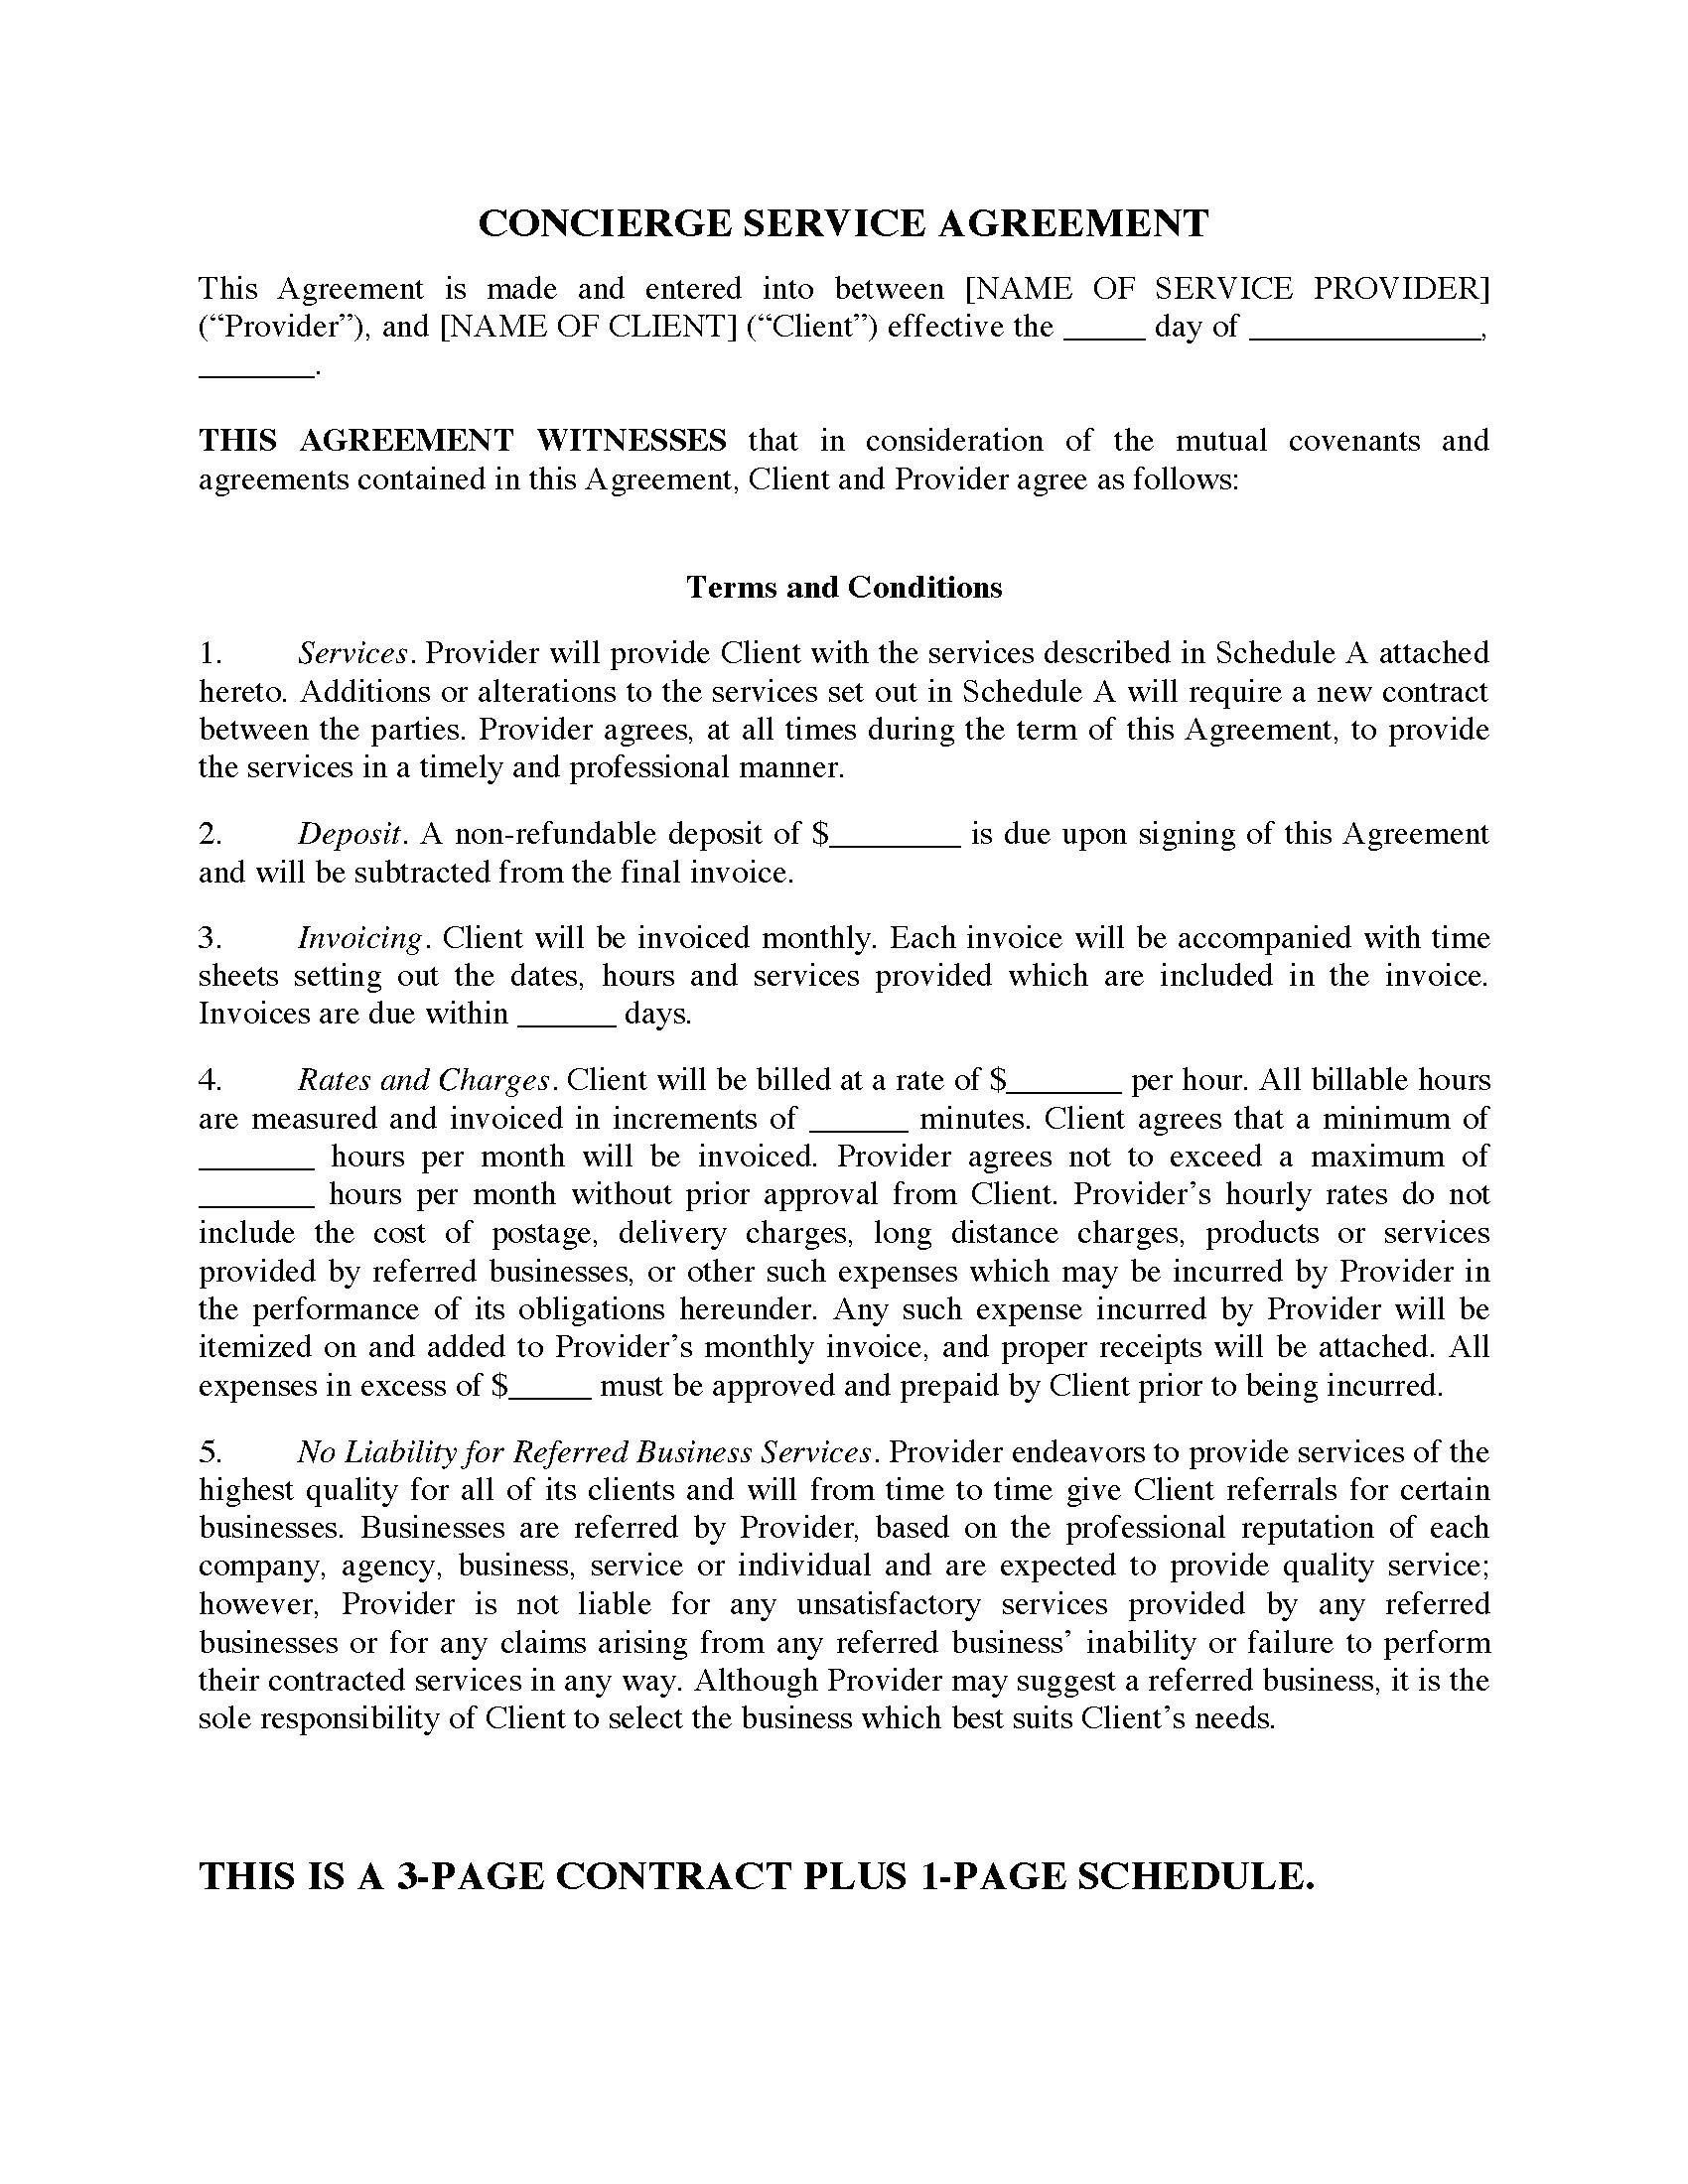 Concierge Contract Template Concierge Services Contract form Legal forms and